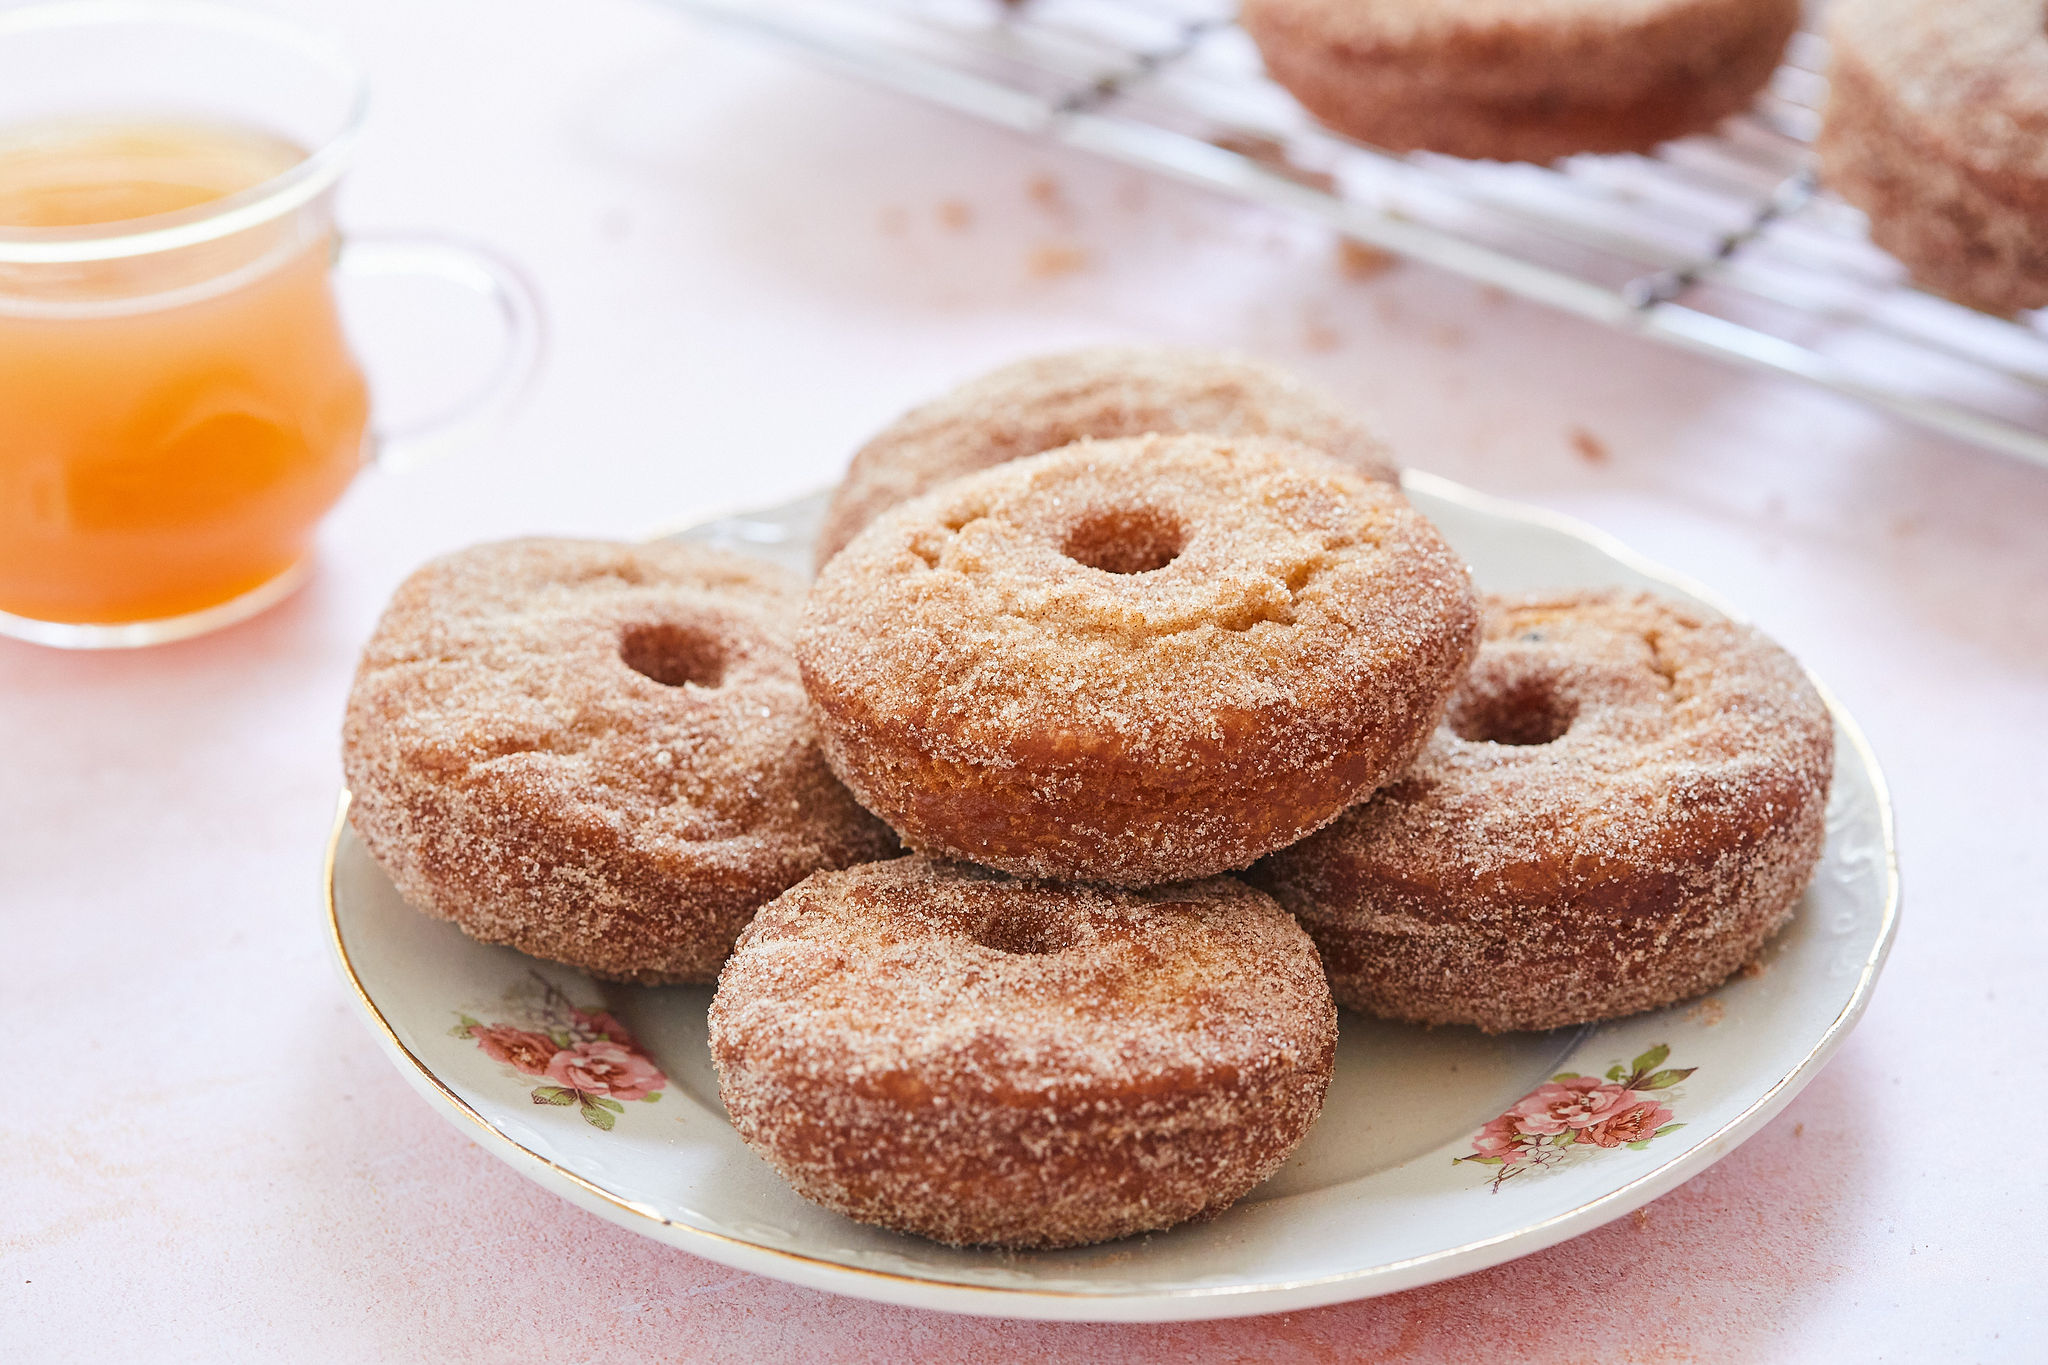 A lovely plate of apple cider donuts.